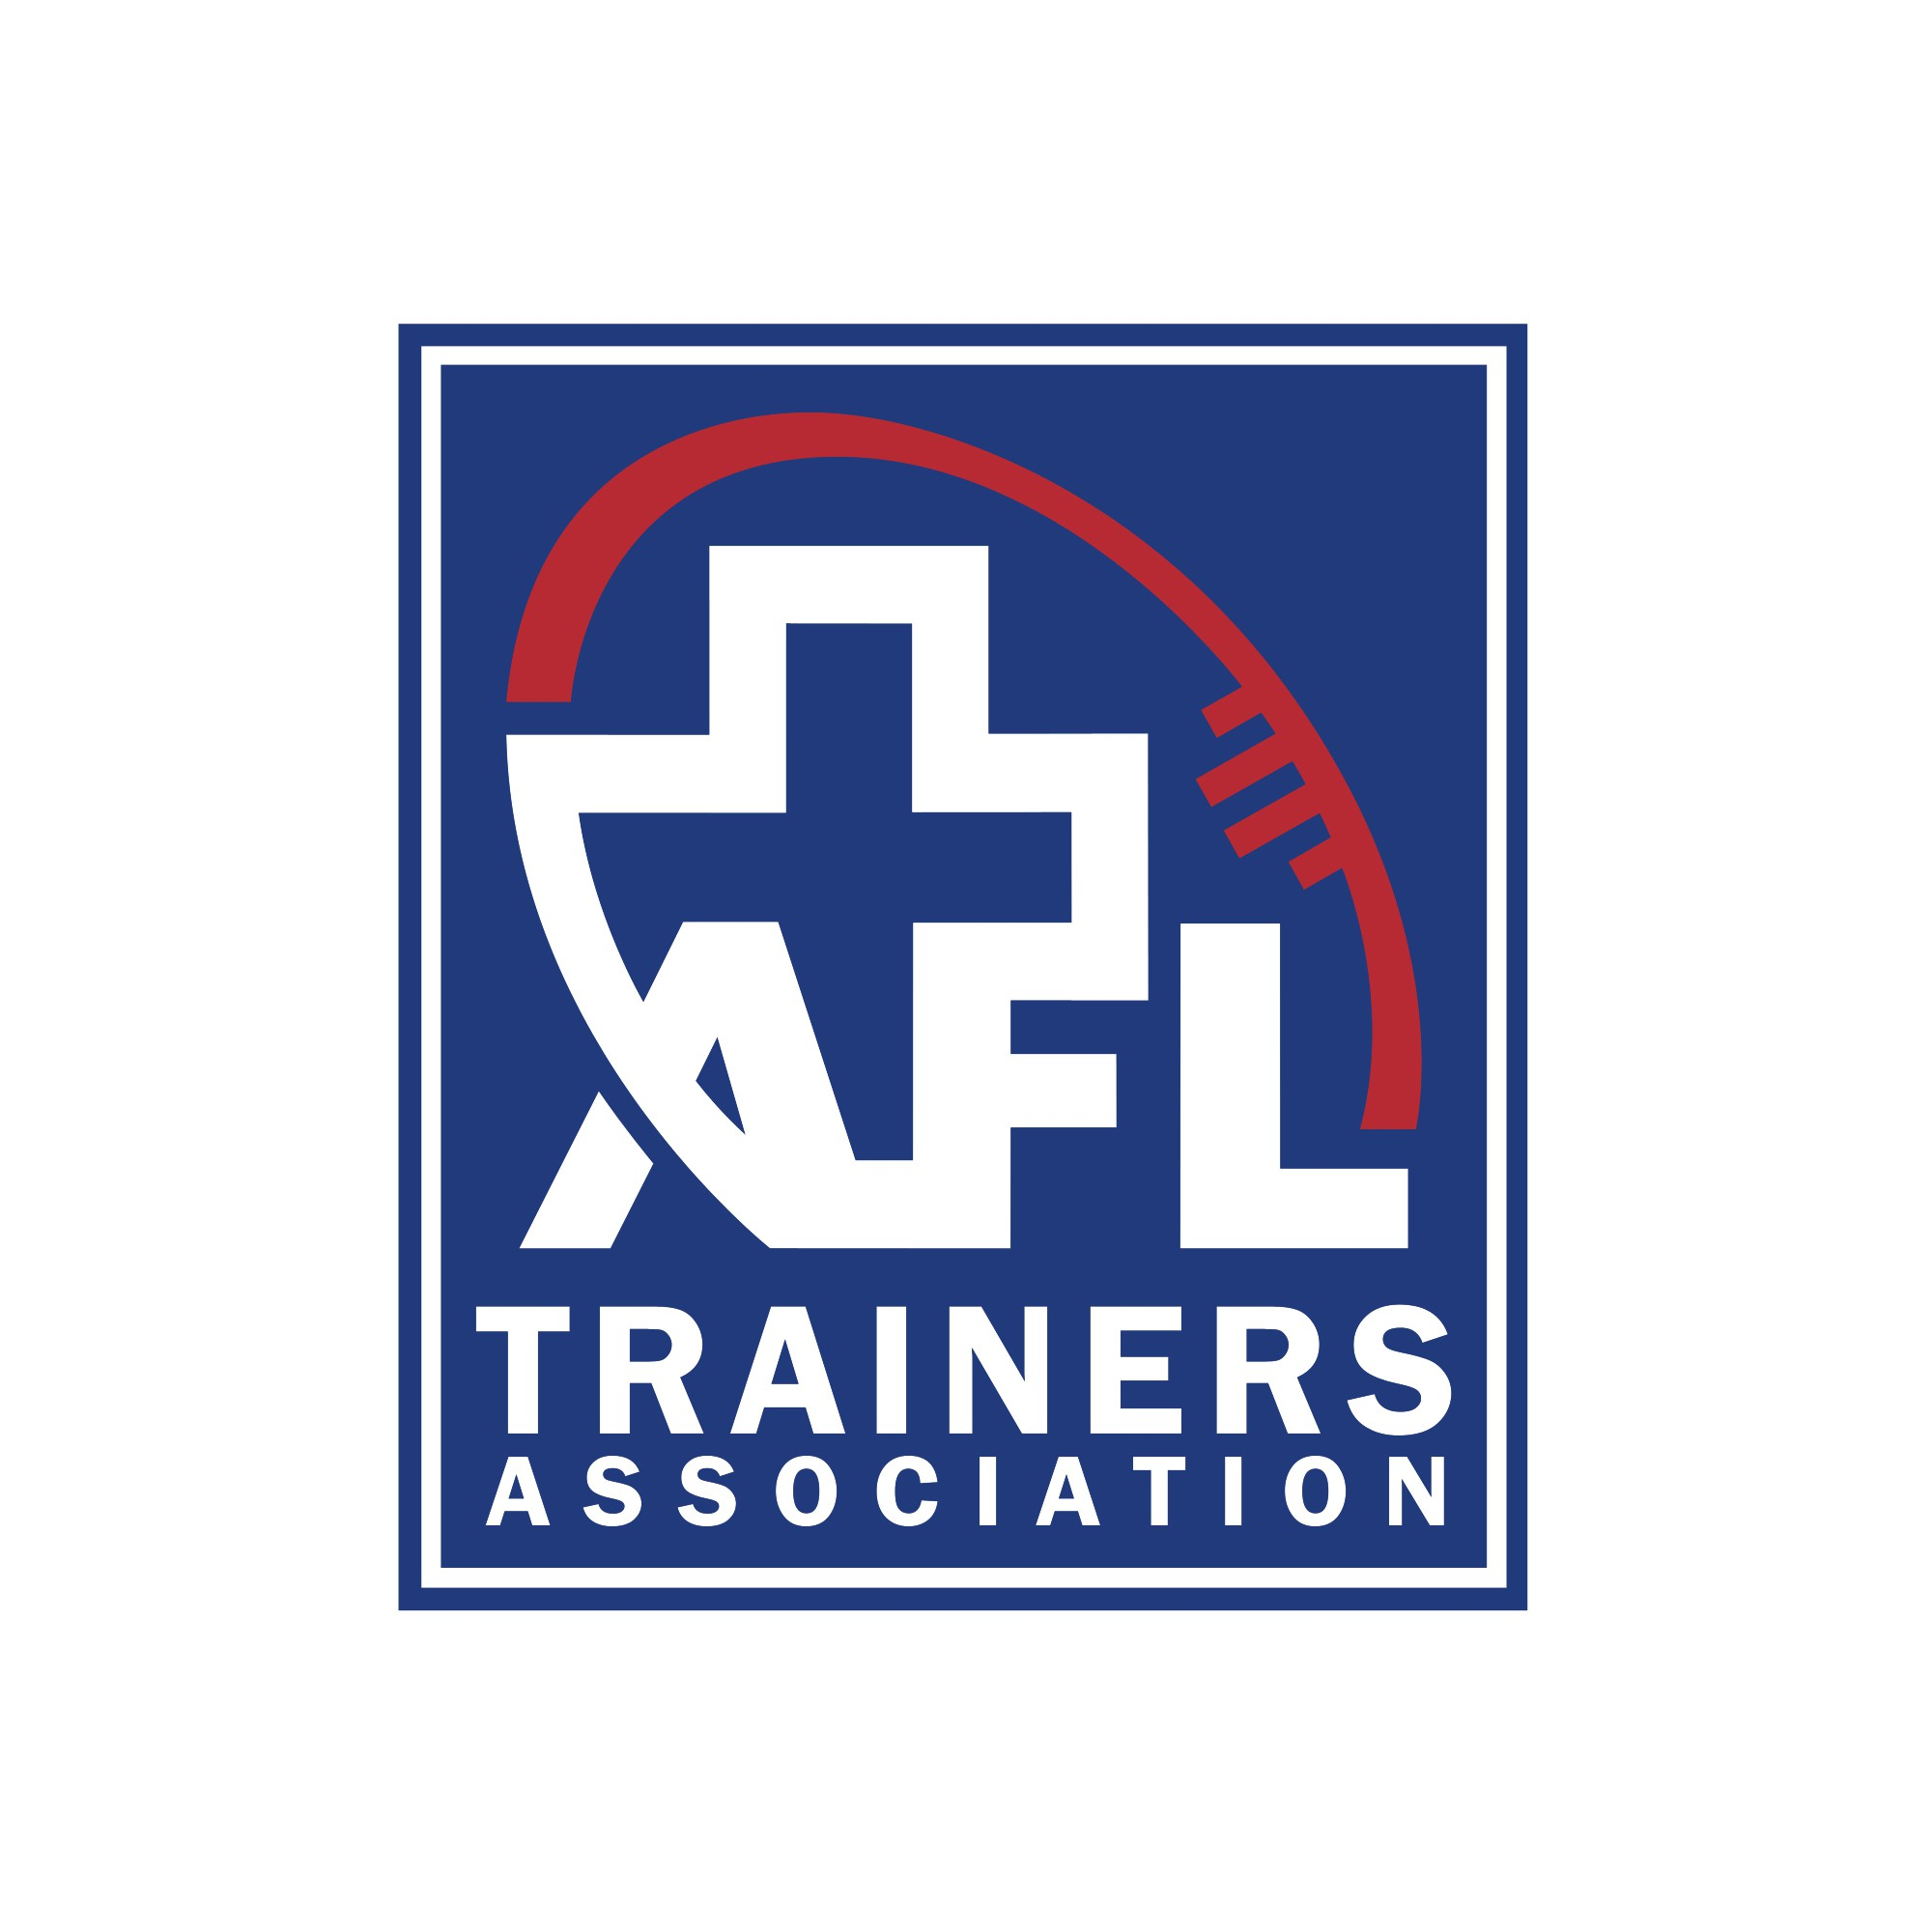 Create a logo for an organisation linked to one of the most well know sporting brands in Australia